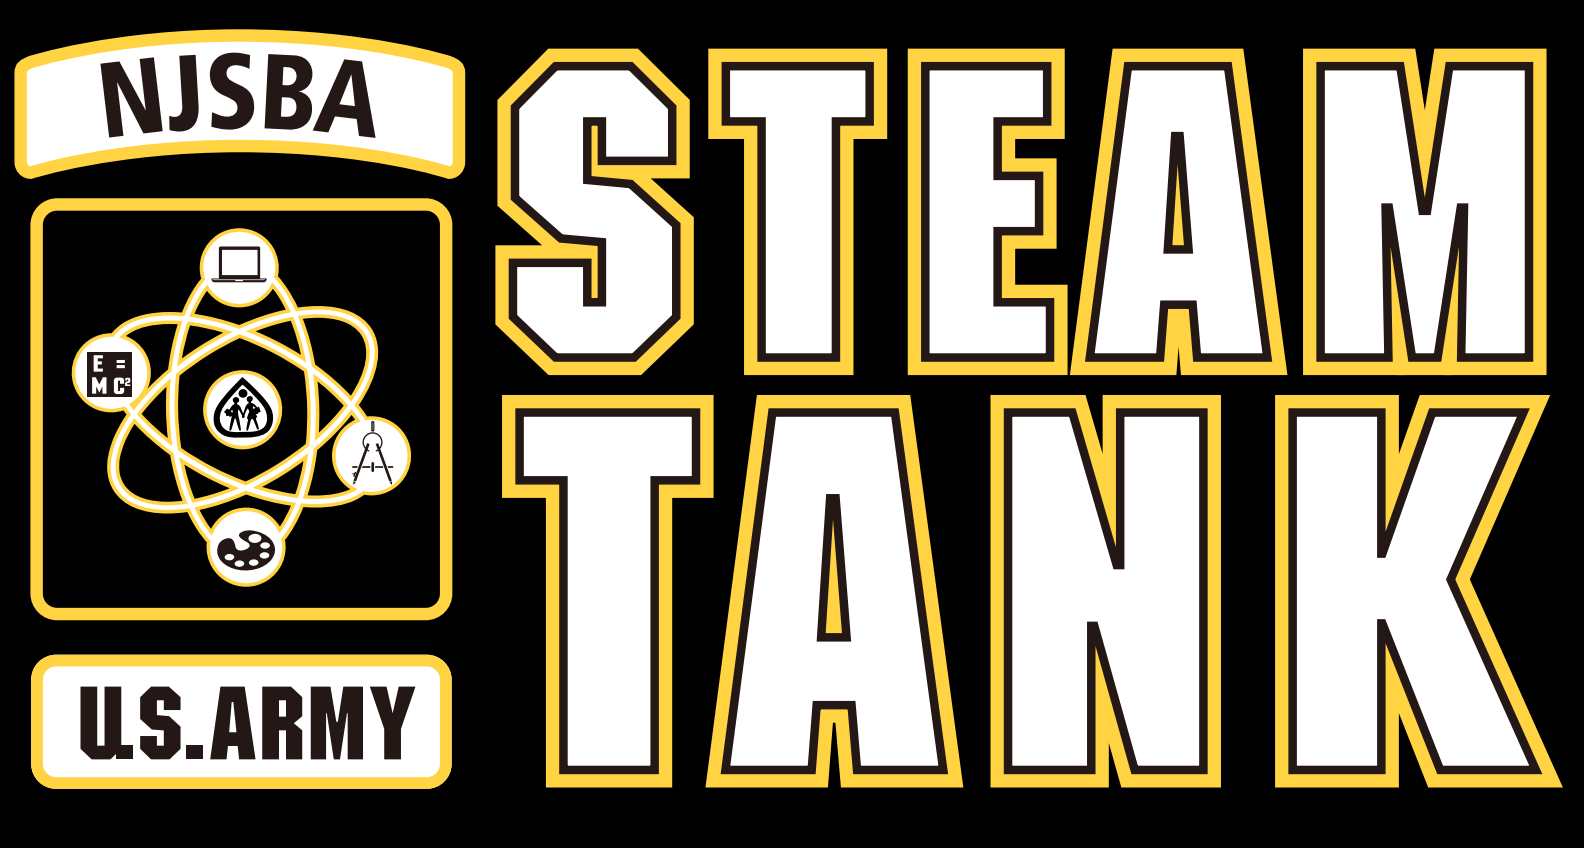 NJSBA Steam Tank